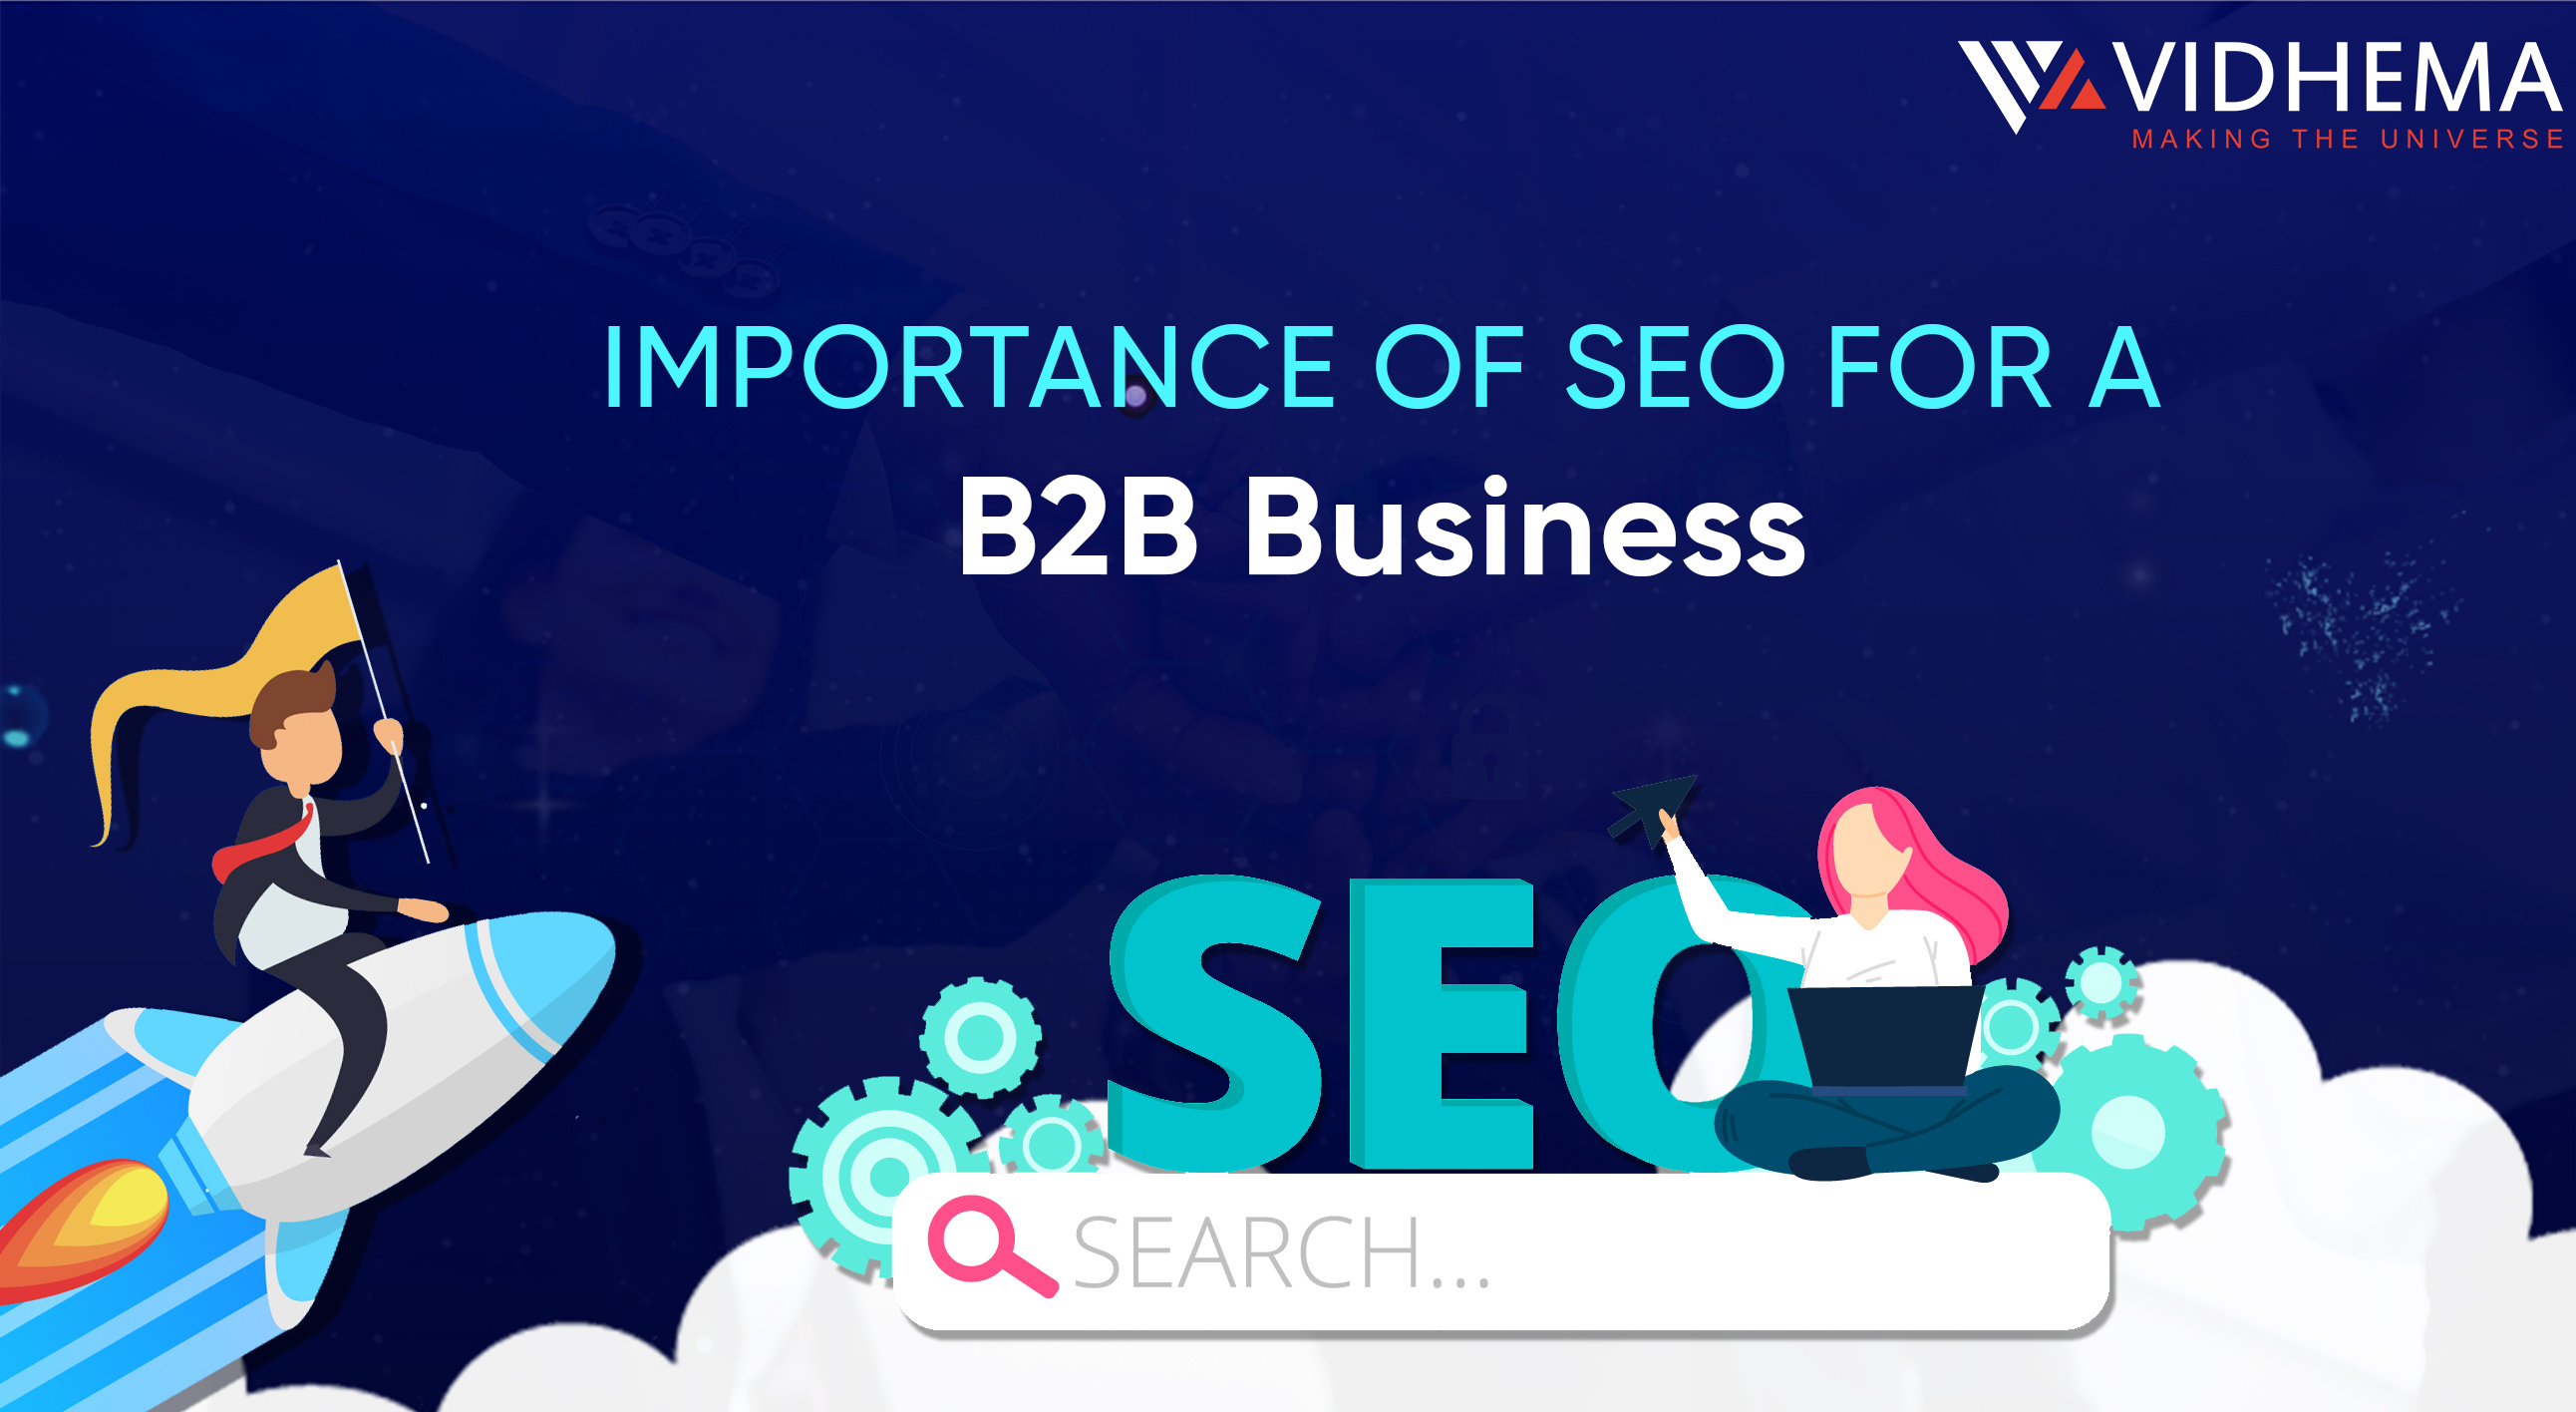 Importance of SEO for a B2B Business